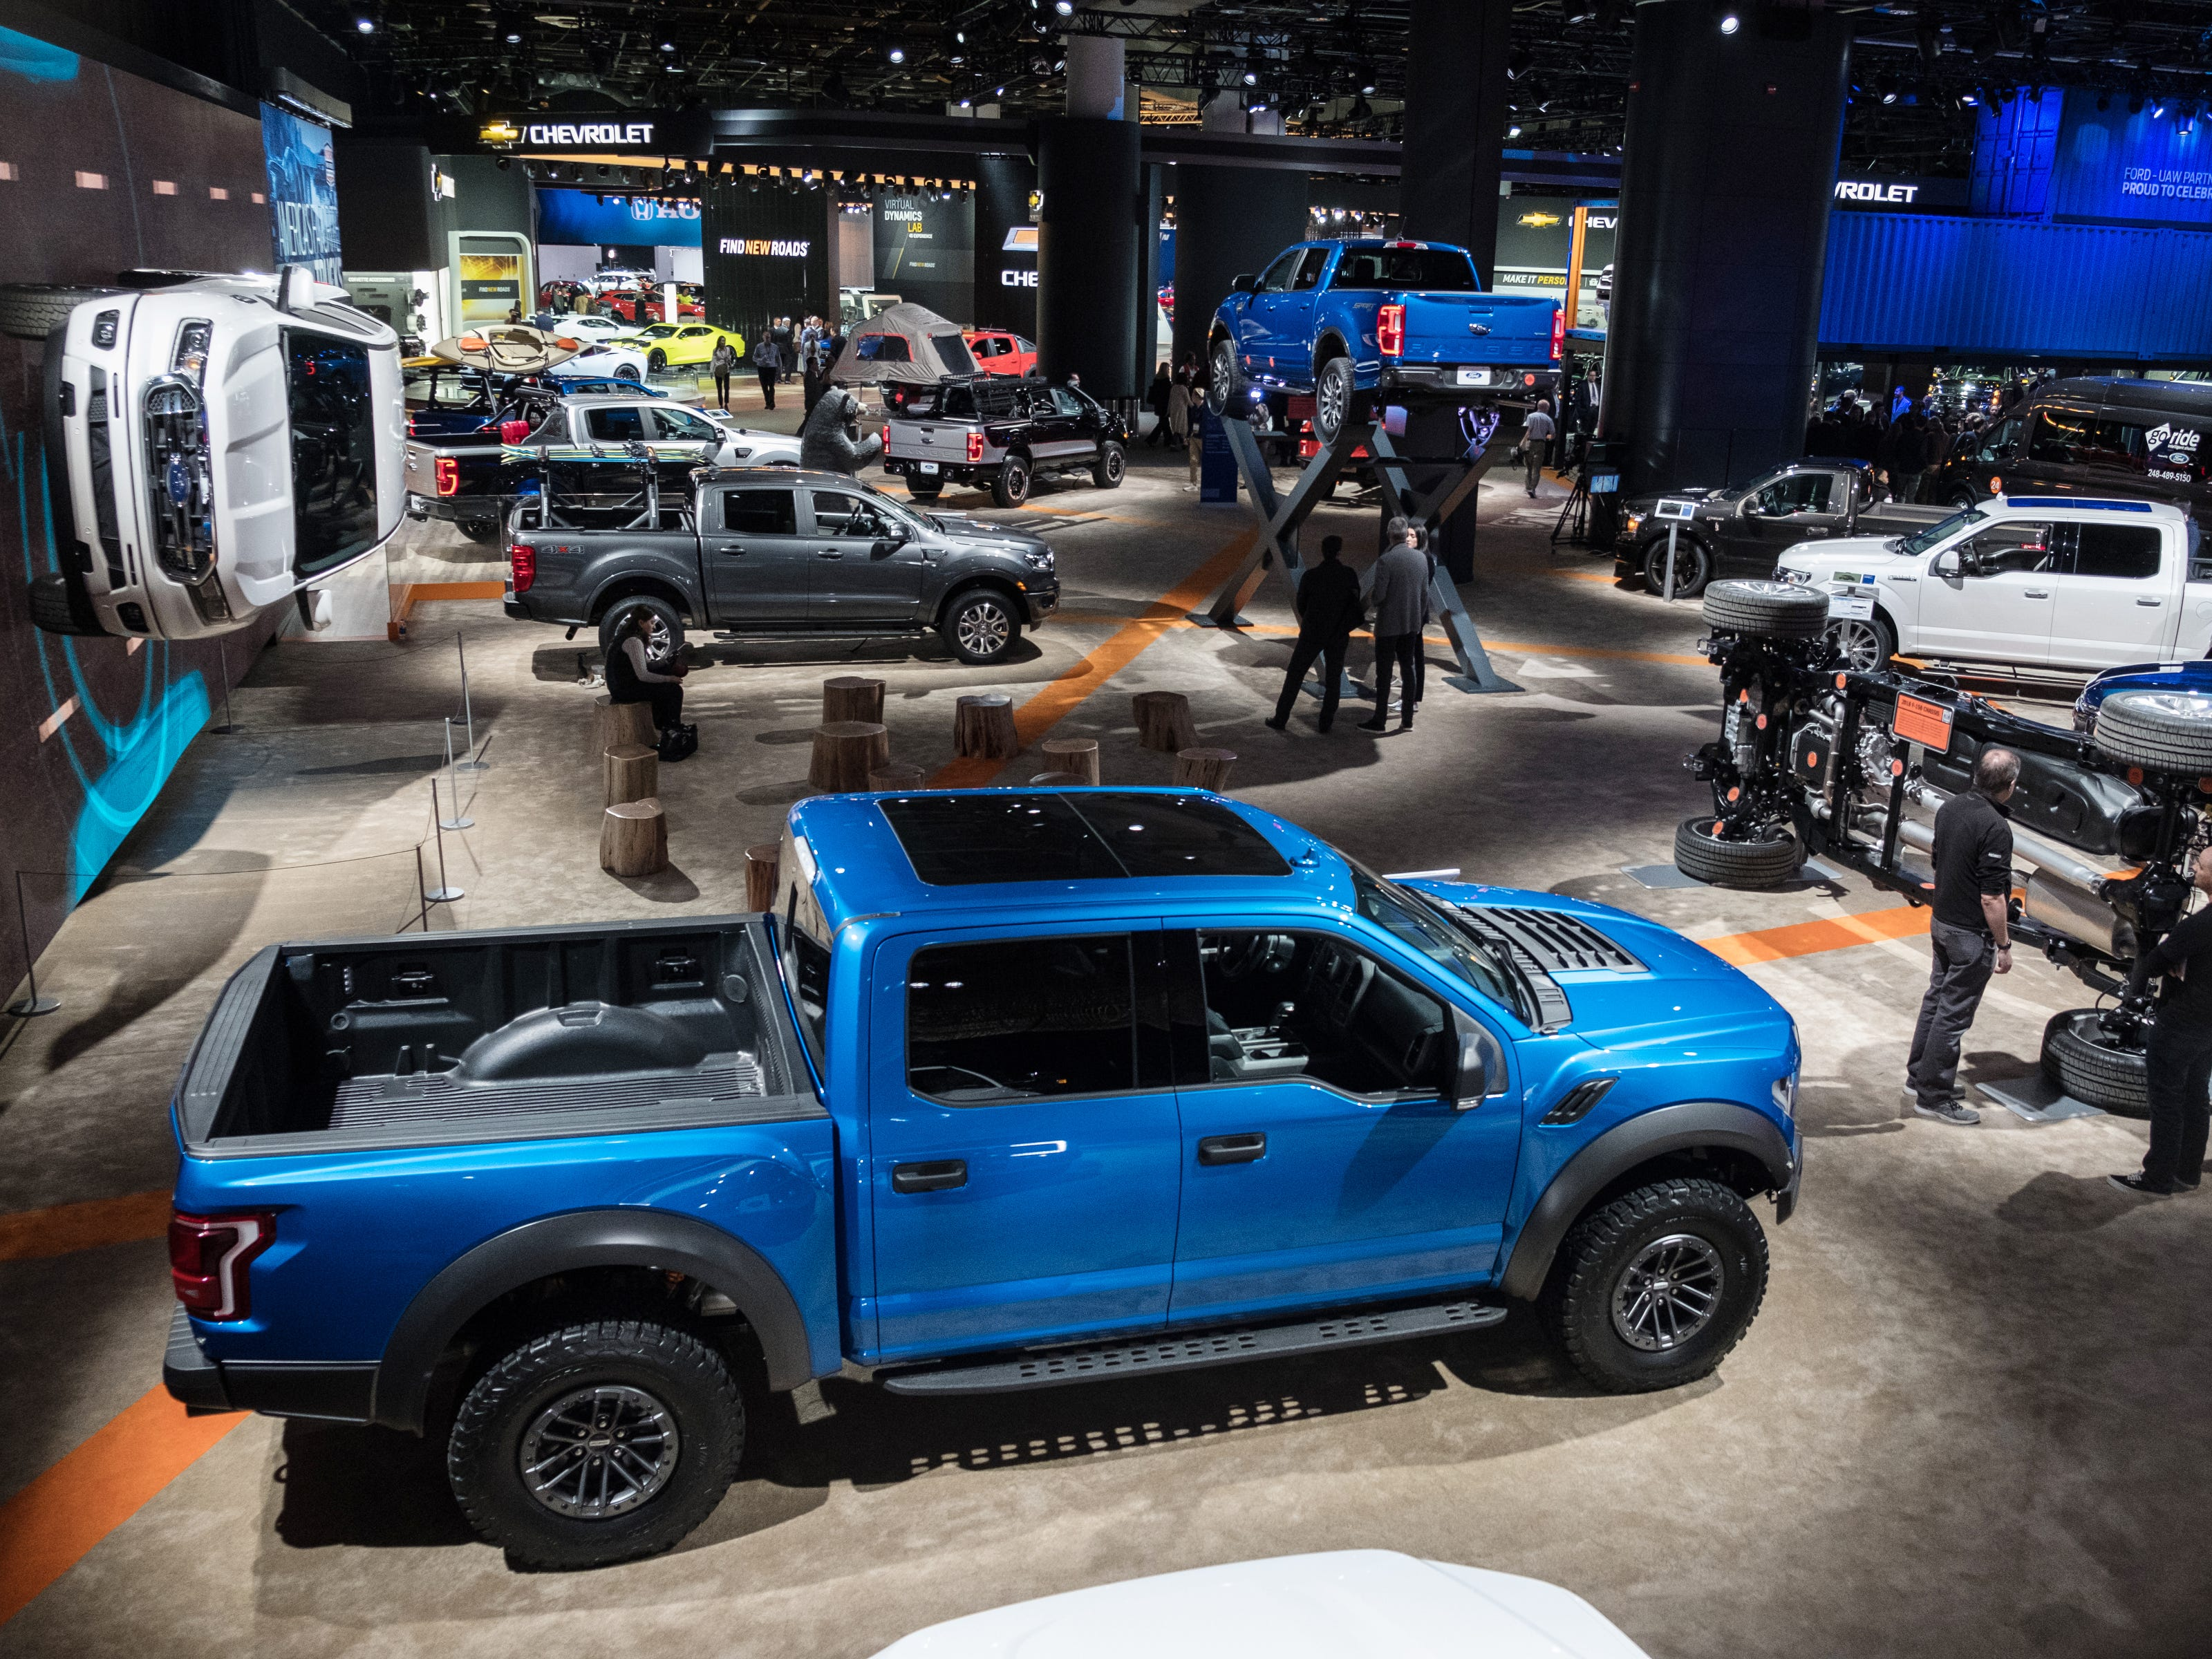 A view of the Ford Motor Company display is seen during the 2019 North American International Auto Show held at Cobo Center in downtown Detroit on Tuesday, Jan. 15, 2019.  (Via OlyDrop)